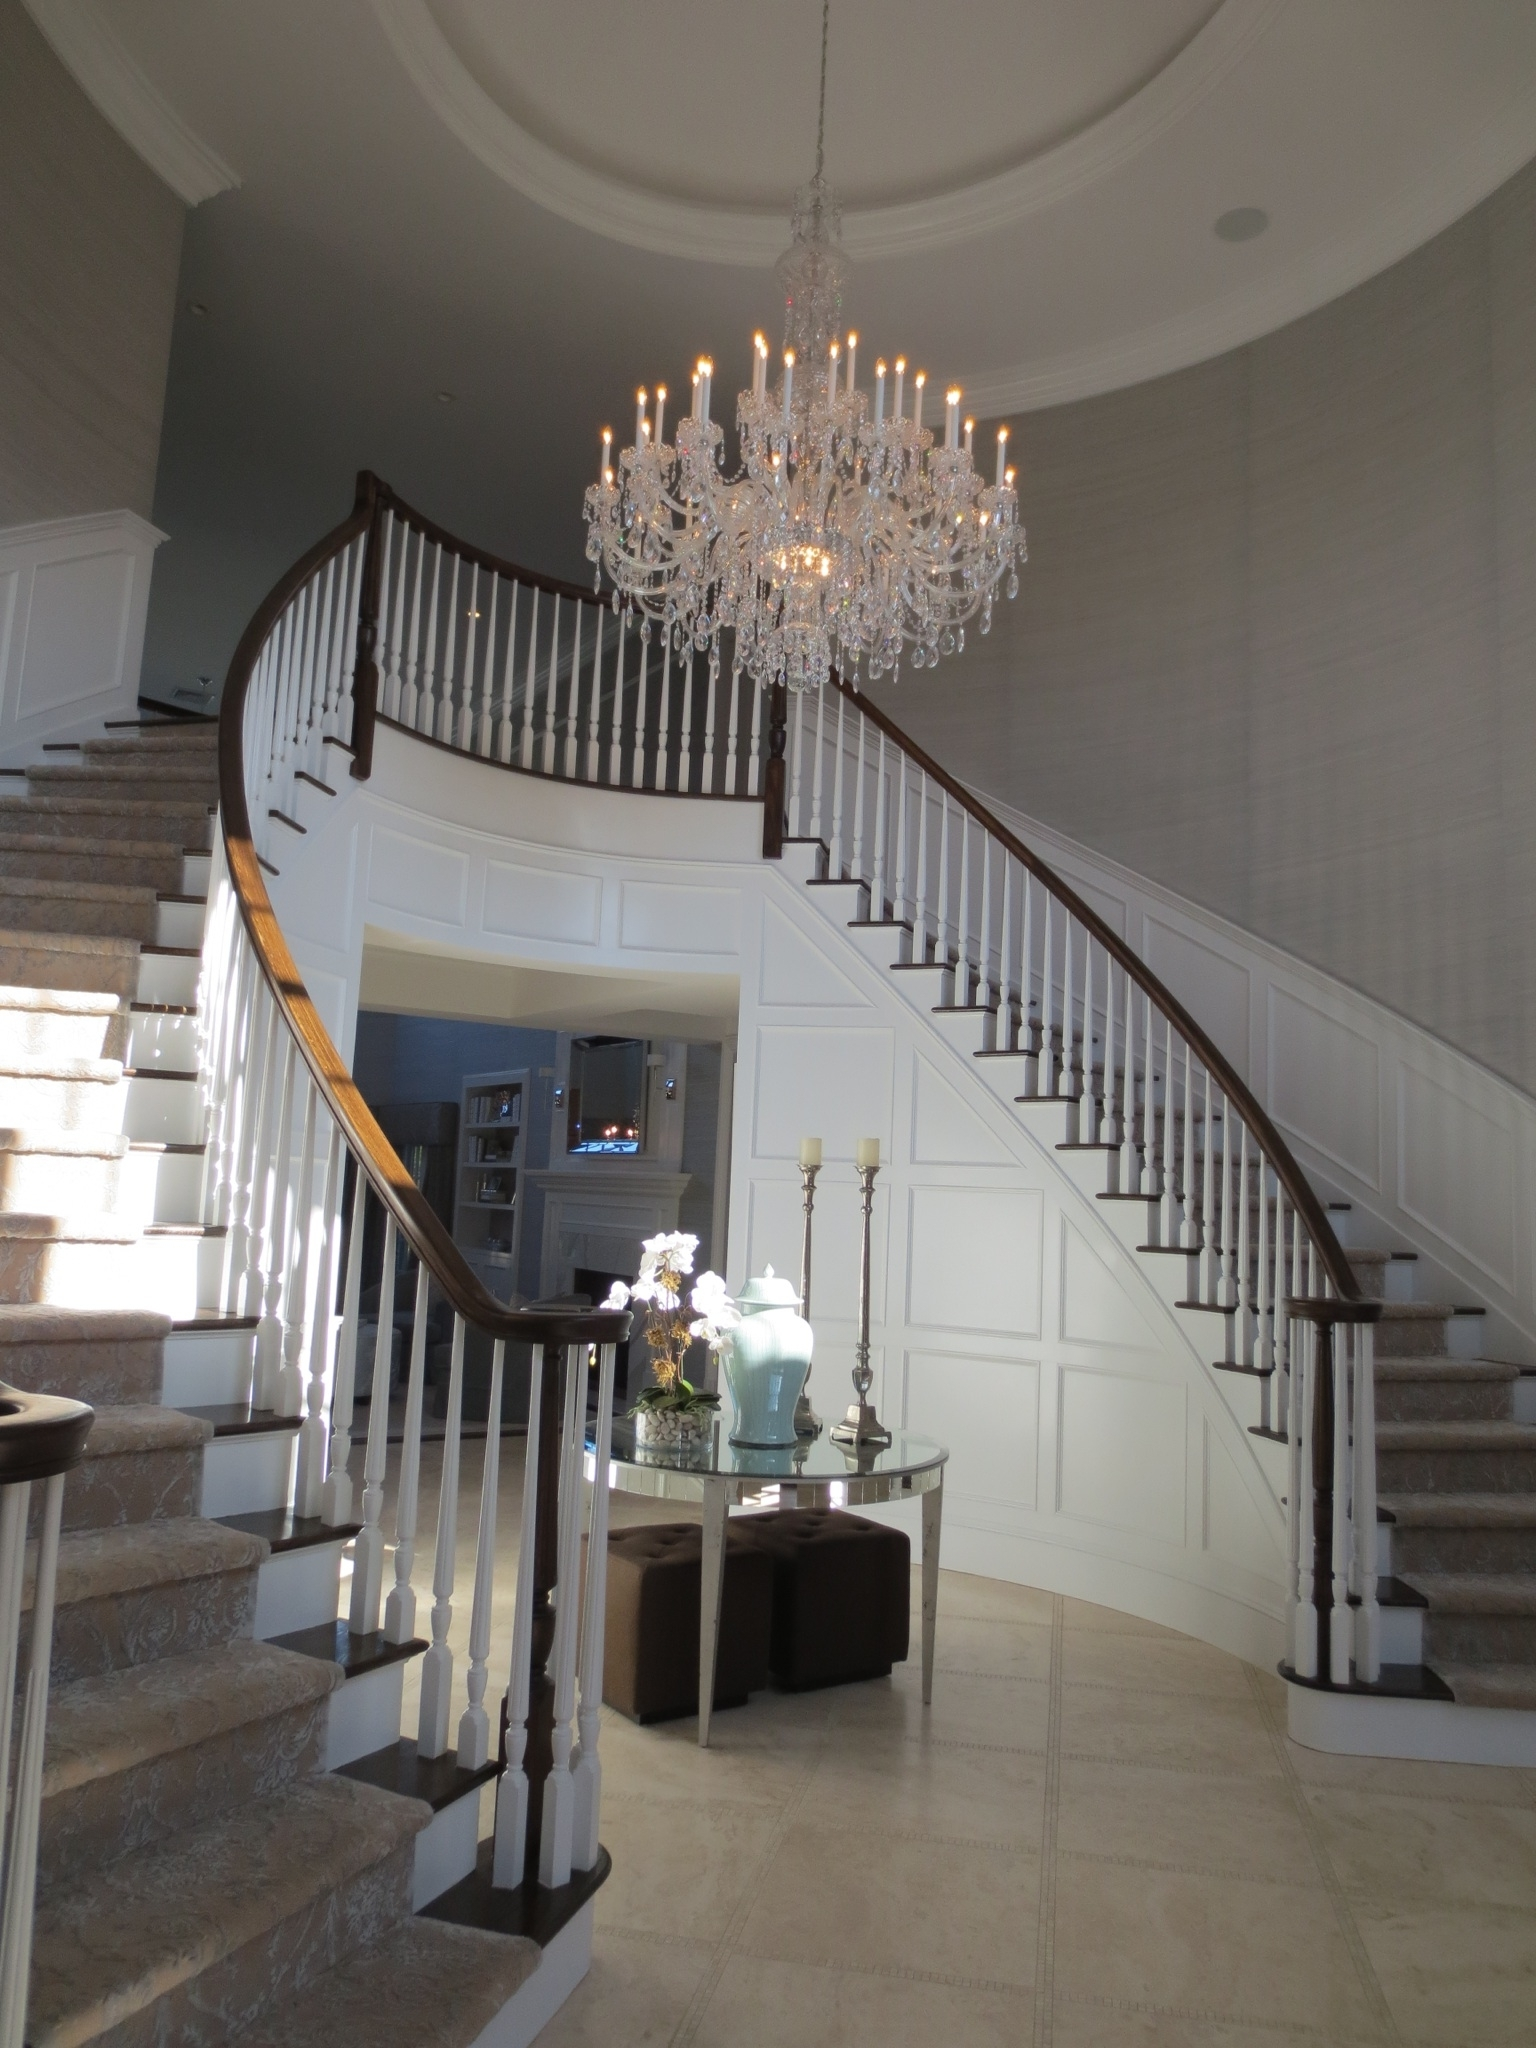 Fashionable Hotel Staircase Chandelier Modern Lighting Fixture Square Pics With Regard To Staircase Chandeliers (View 5 of 20)